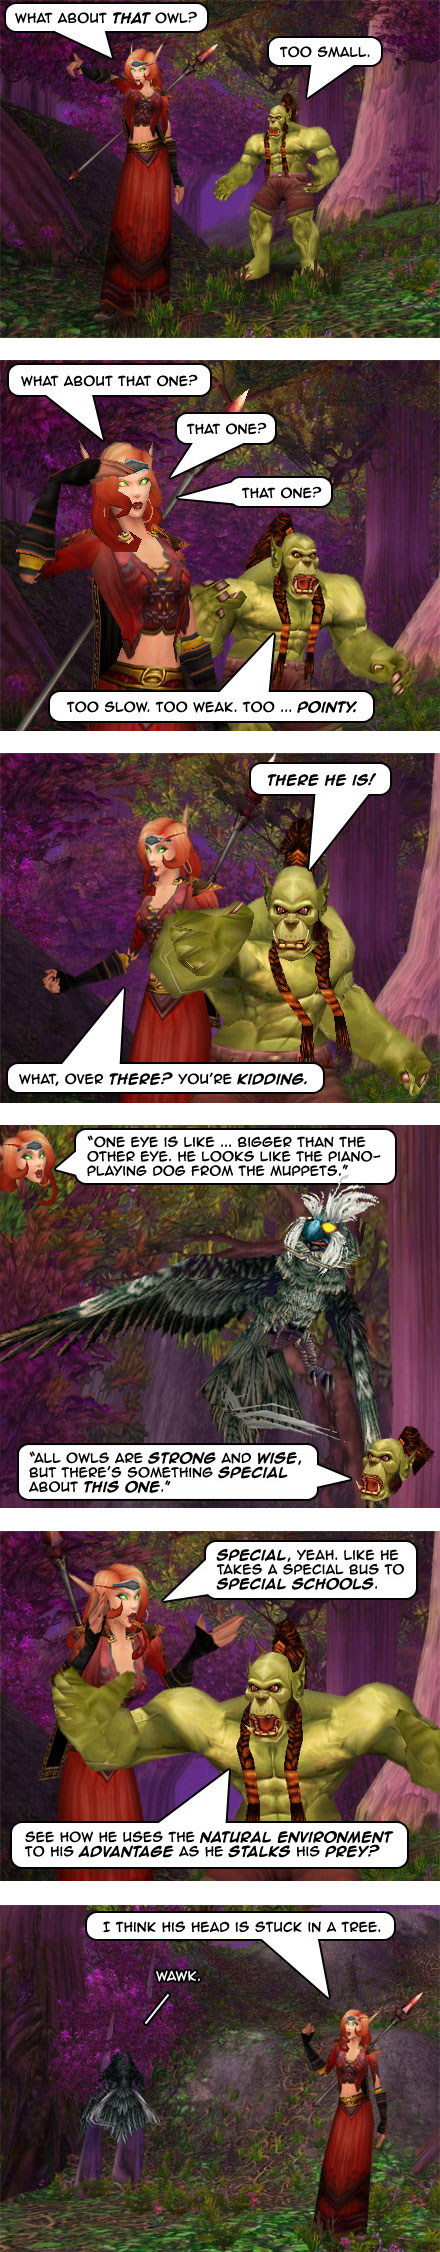 Part 13: Good Owl Hunting